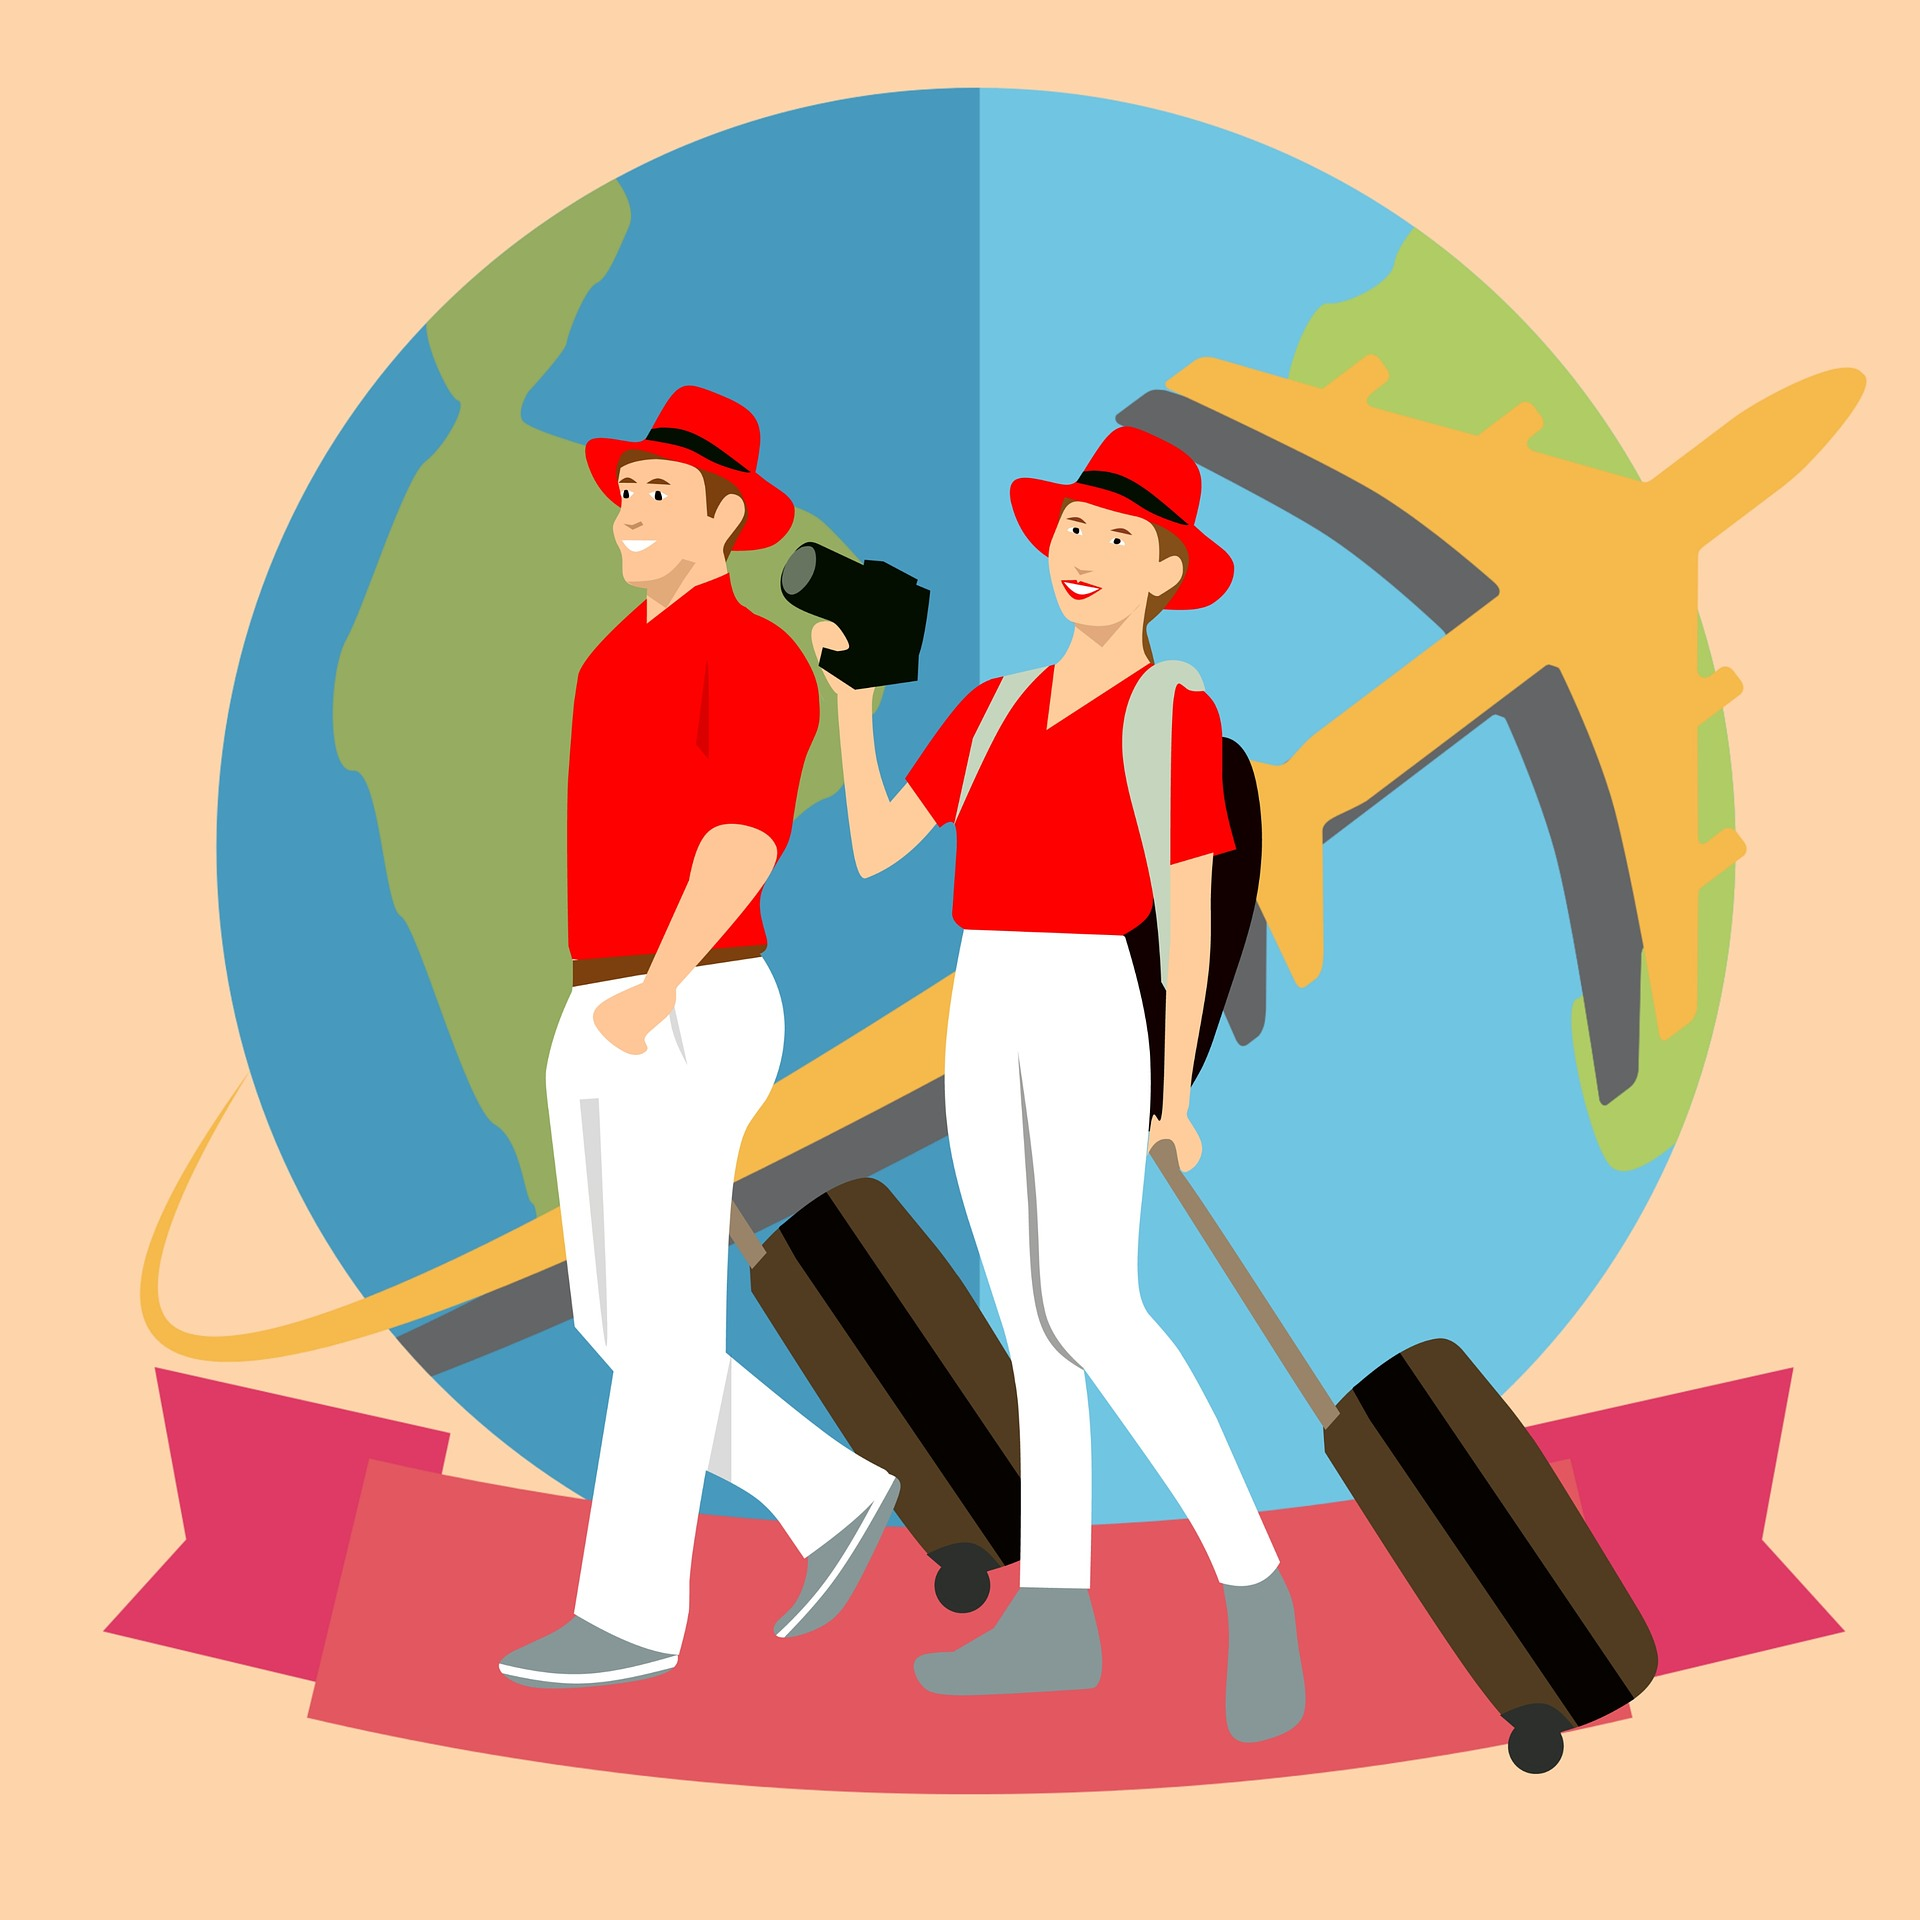 Indians most interested in future travel: Report